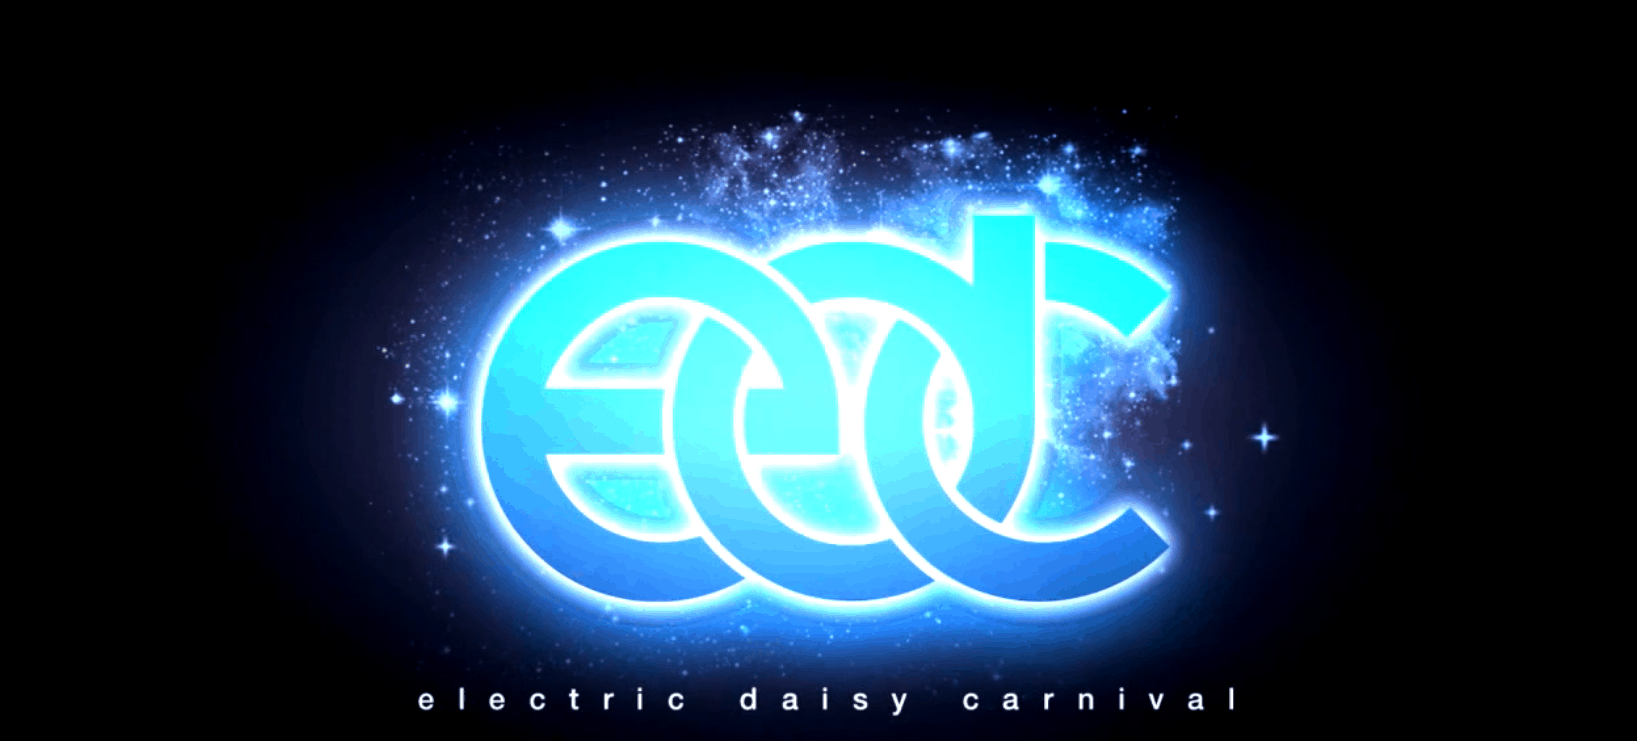 The 2006 Electric Daisy Carnival Website Is Still Online